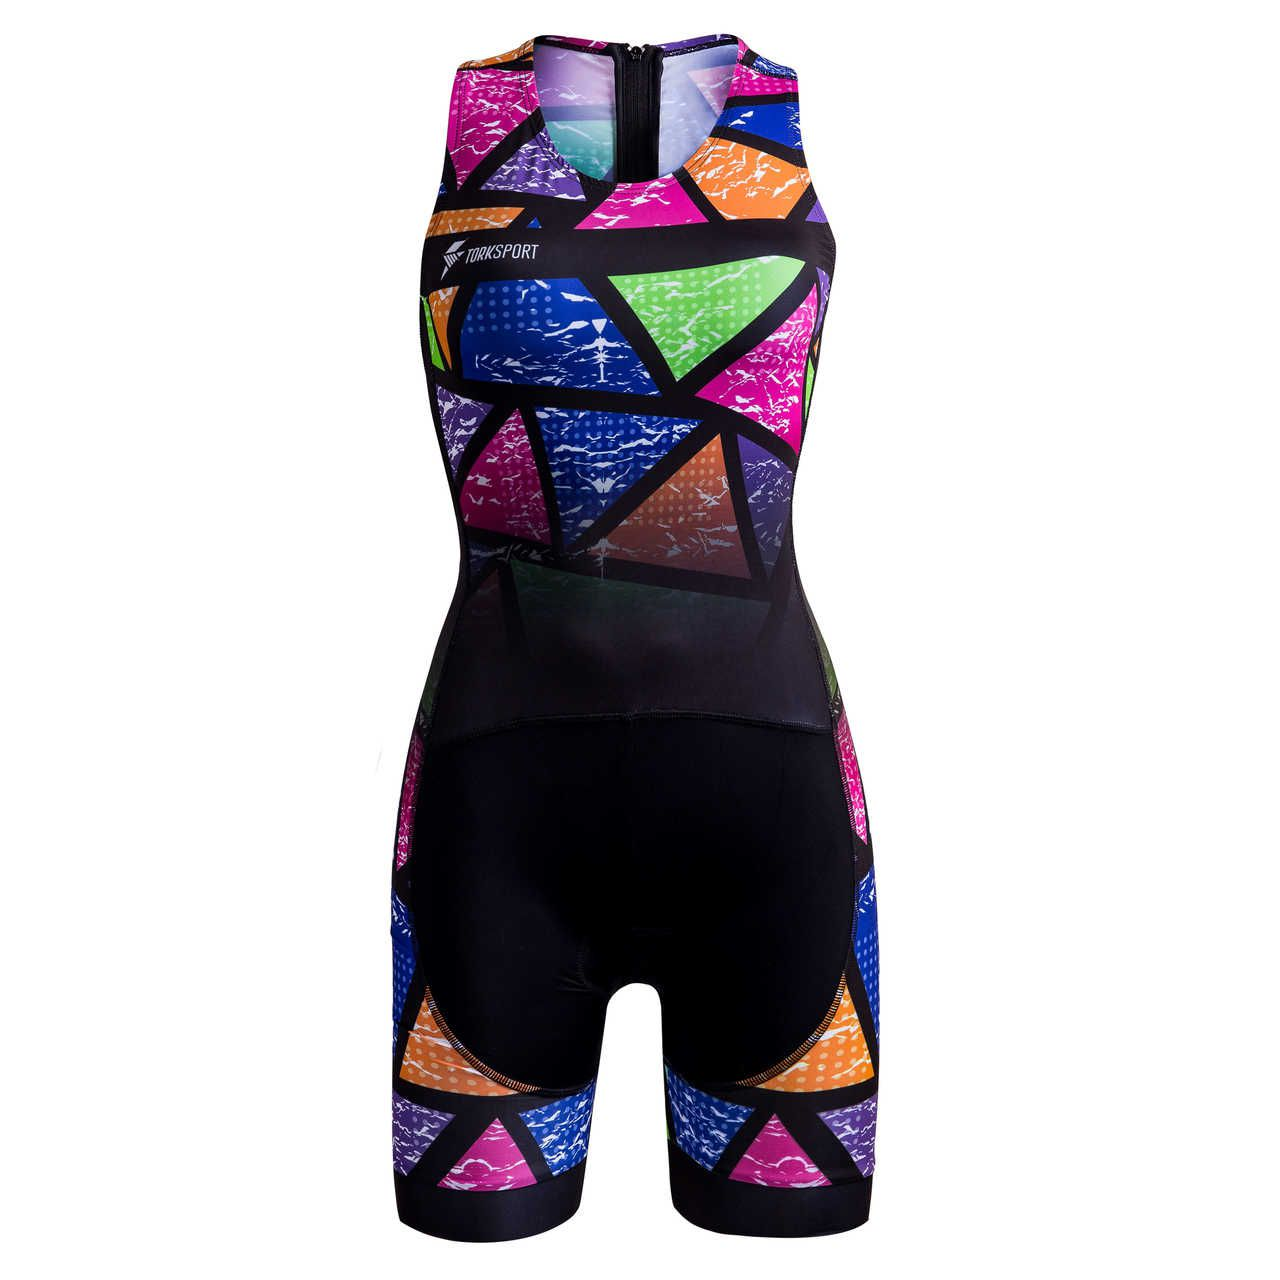 MACAQUINHO TRIATHLON FEMININO (COLORFUL TILES)